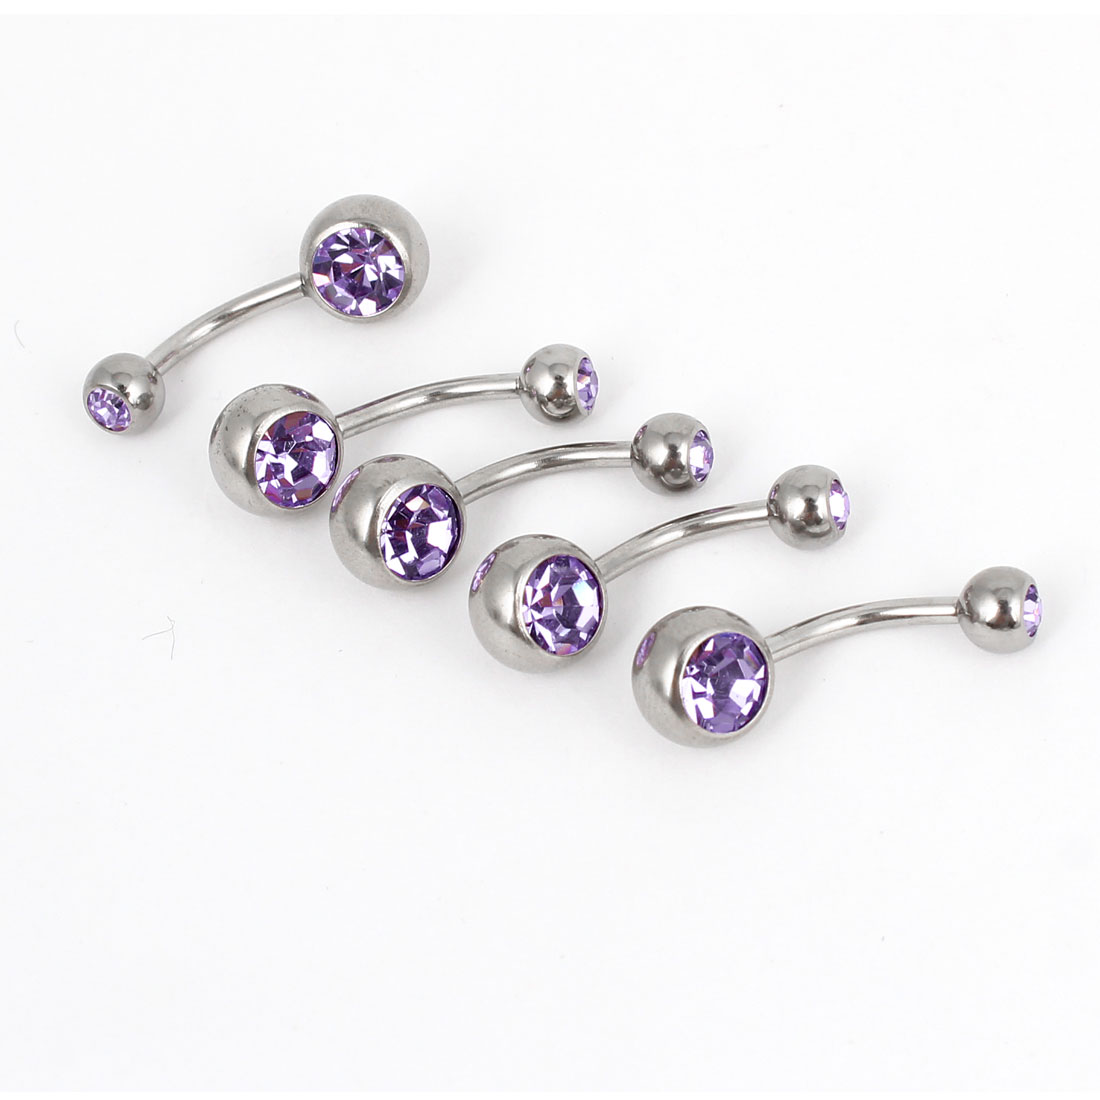 5Pcs Rhinestone Accent Stainless Steel Belly Button Navel Ring Body Piercing